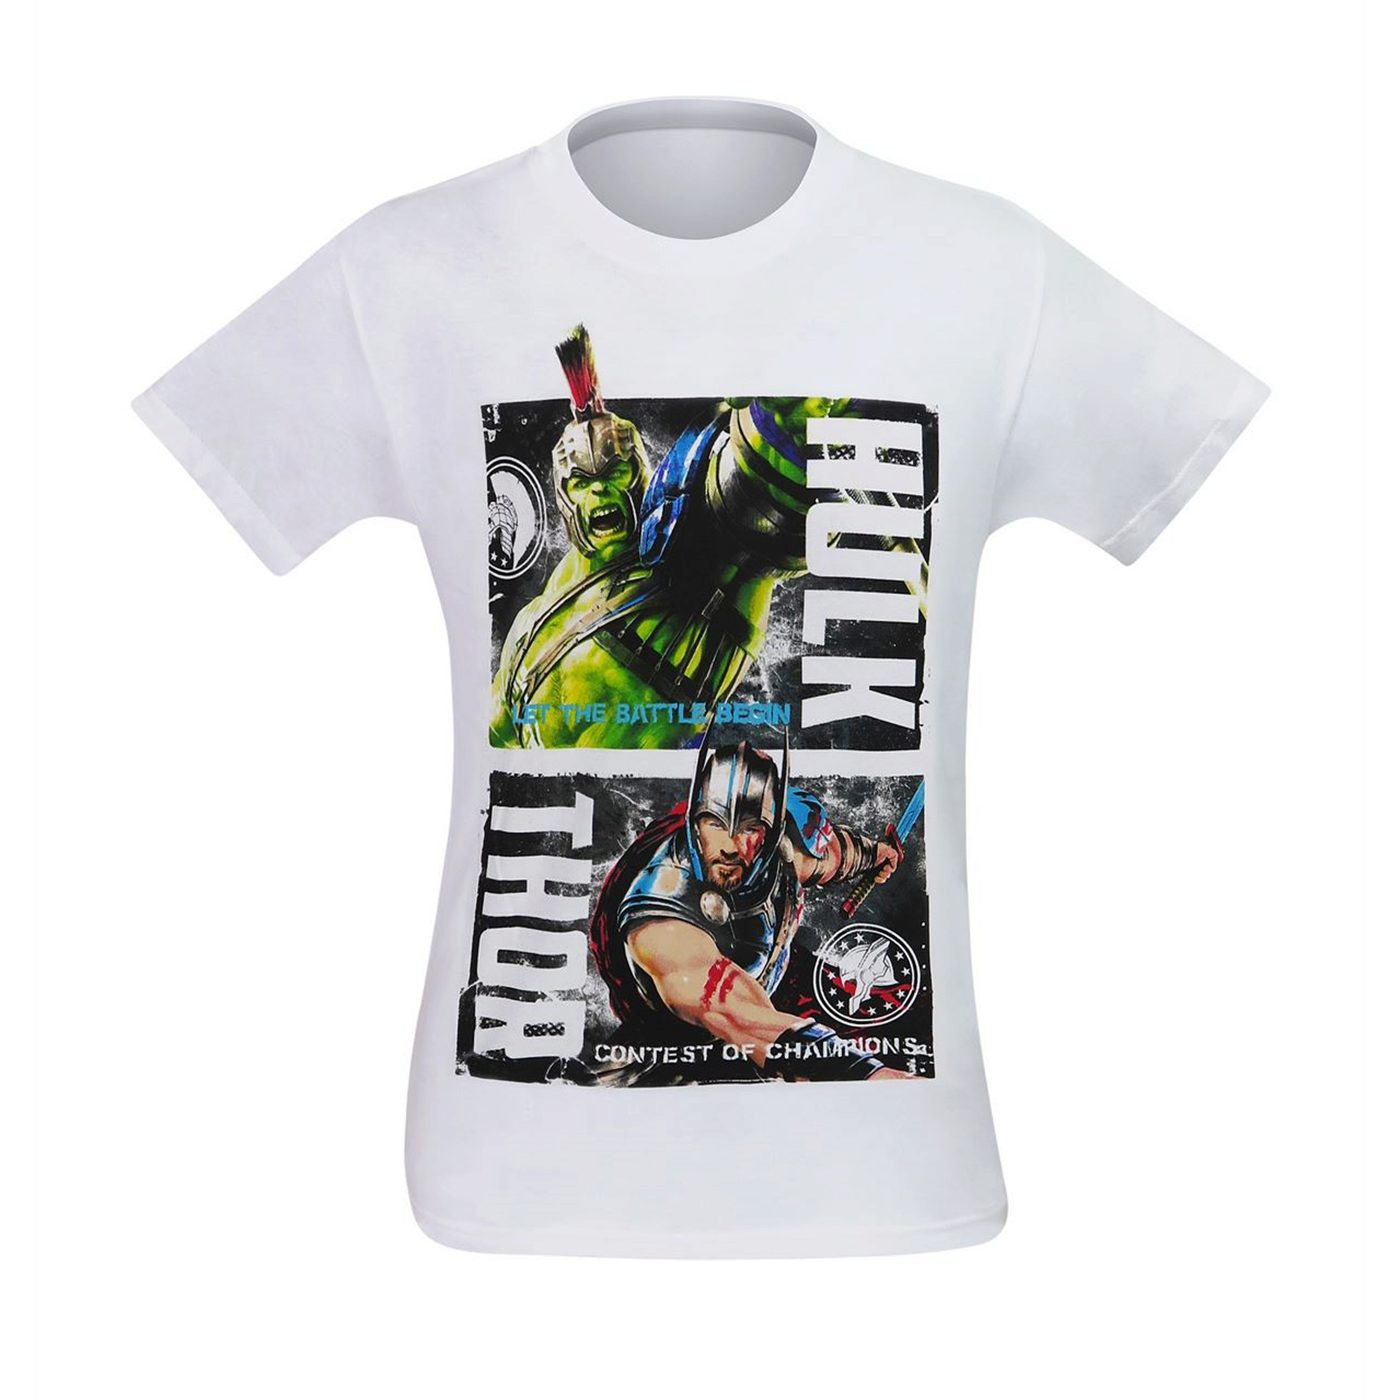 Thor Ragnarok Contest of Champions Youth T-Shirt